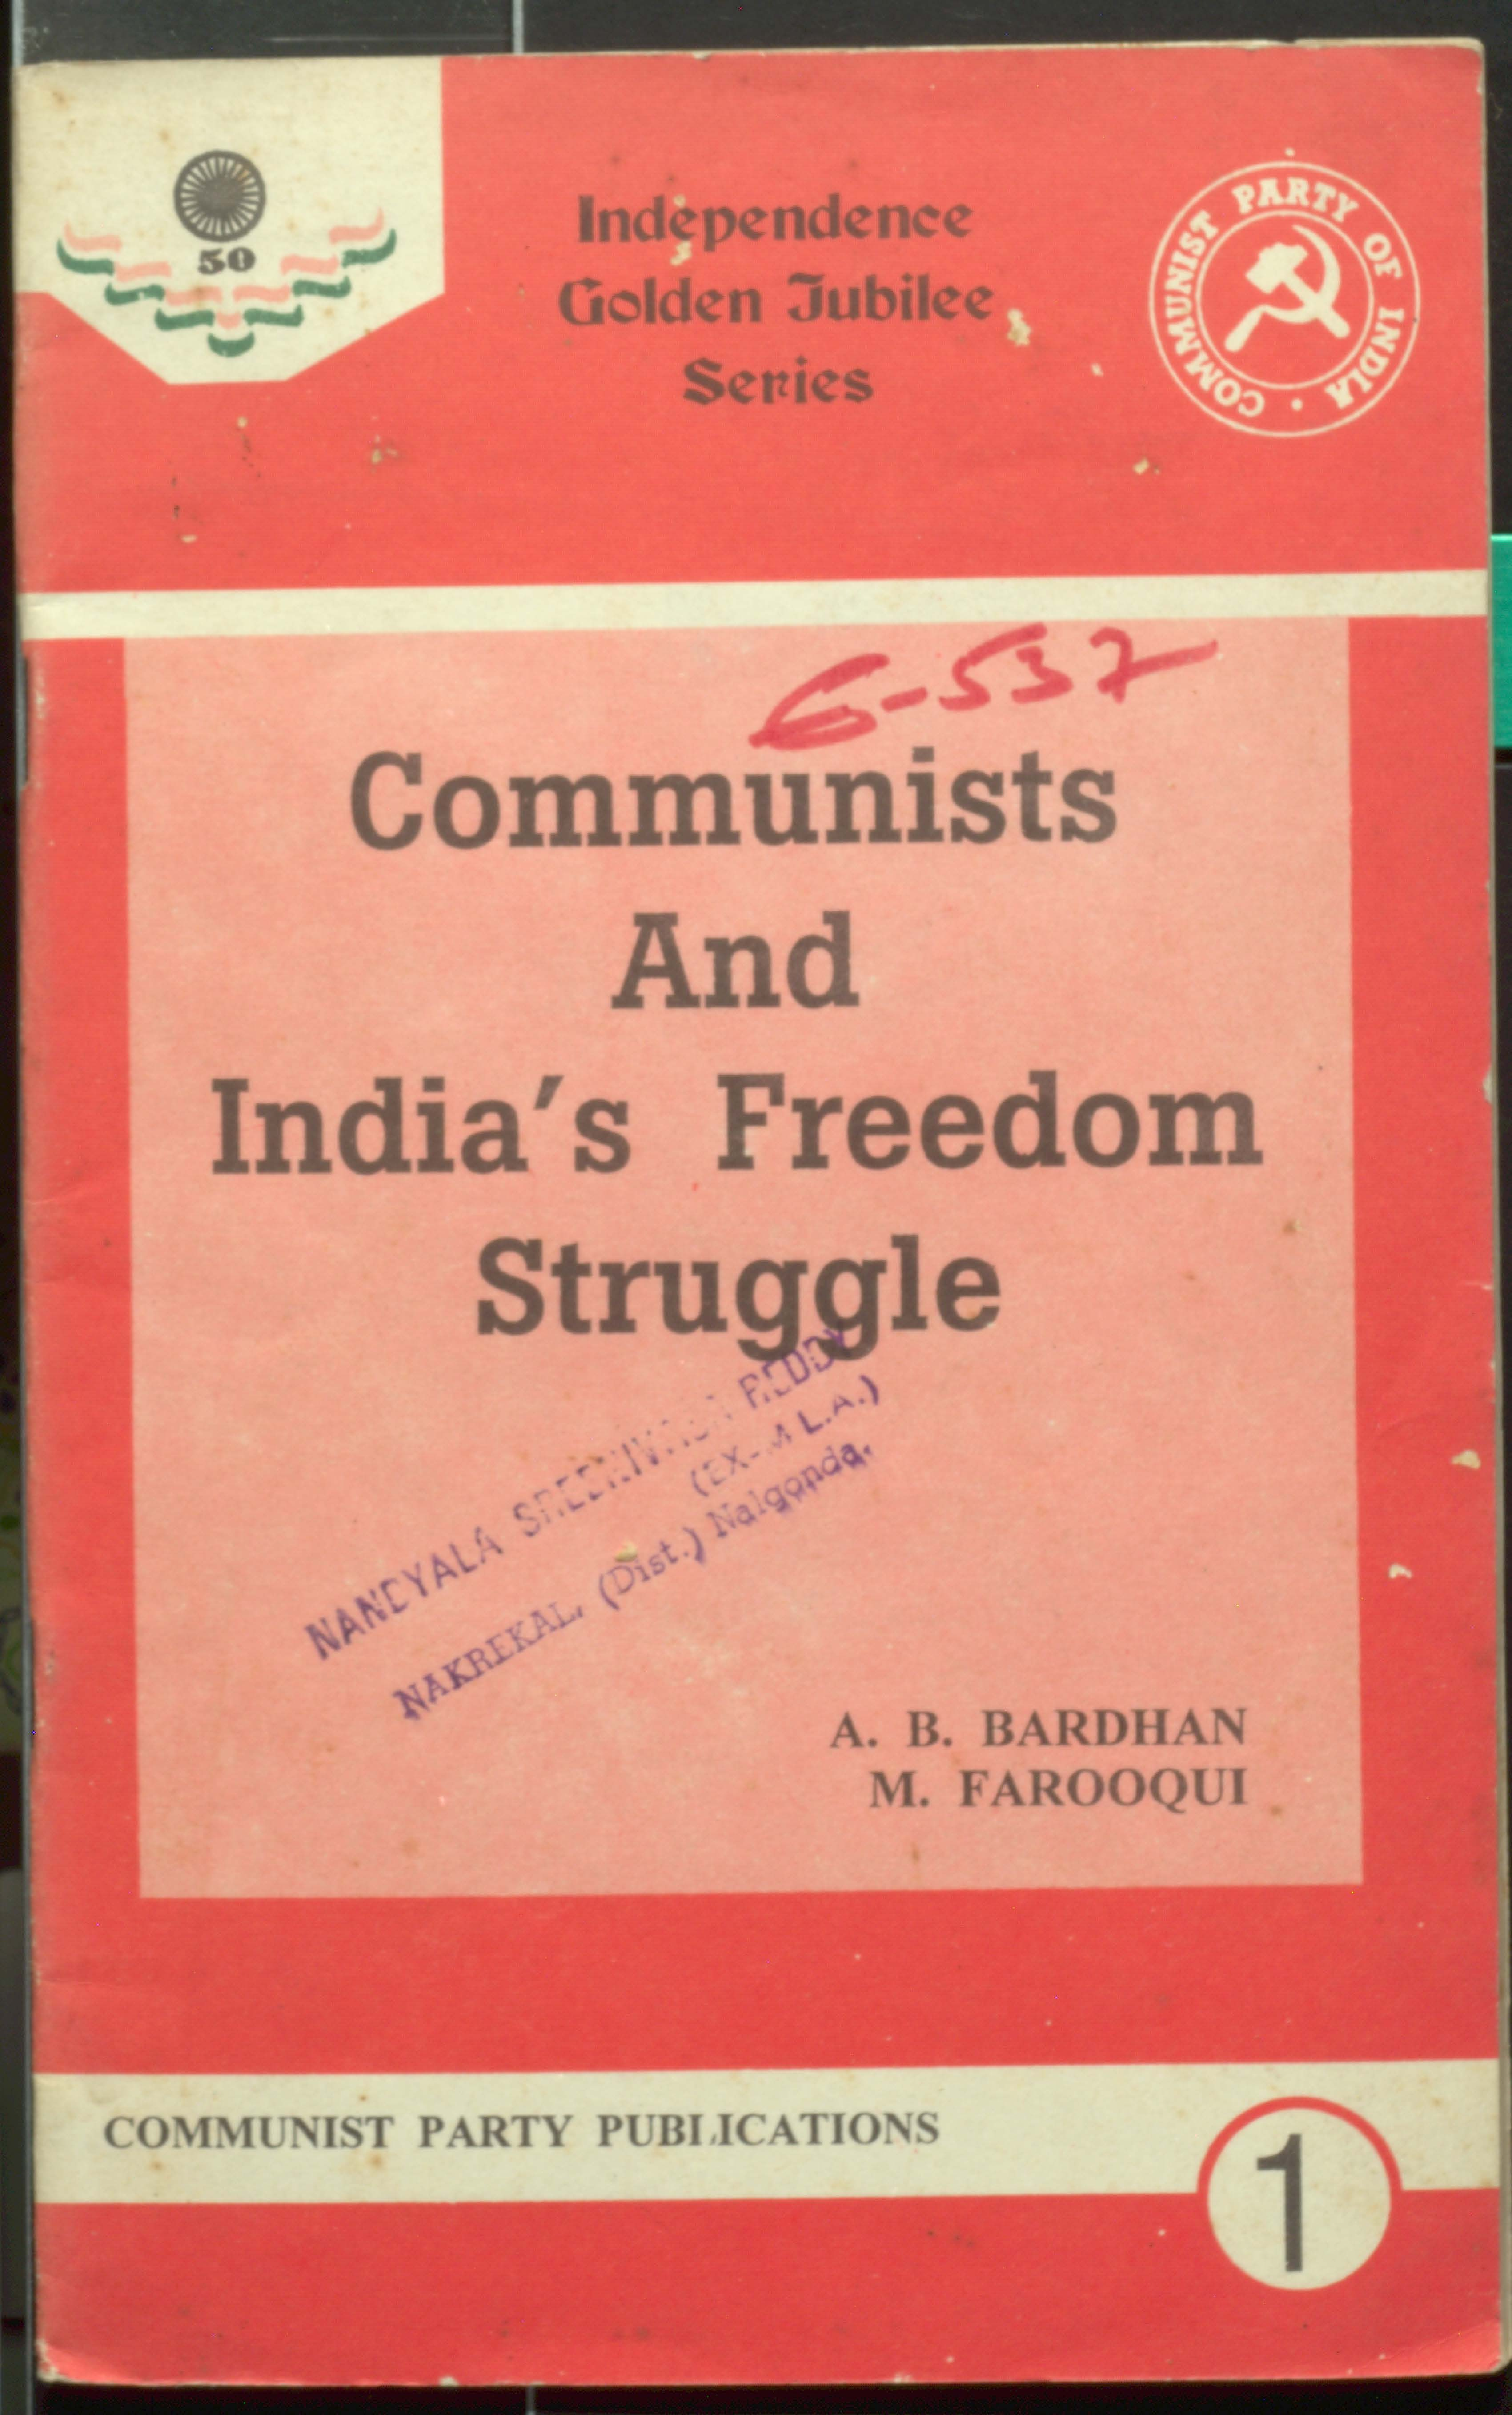 Communists and Indias freedom struggle